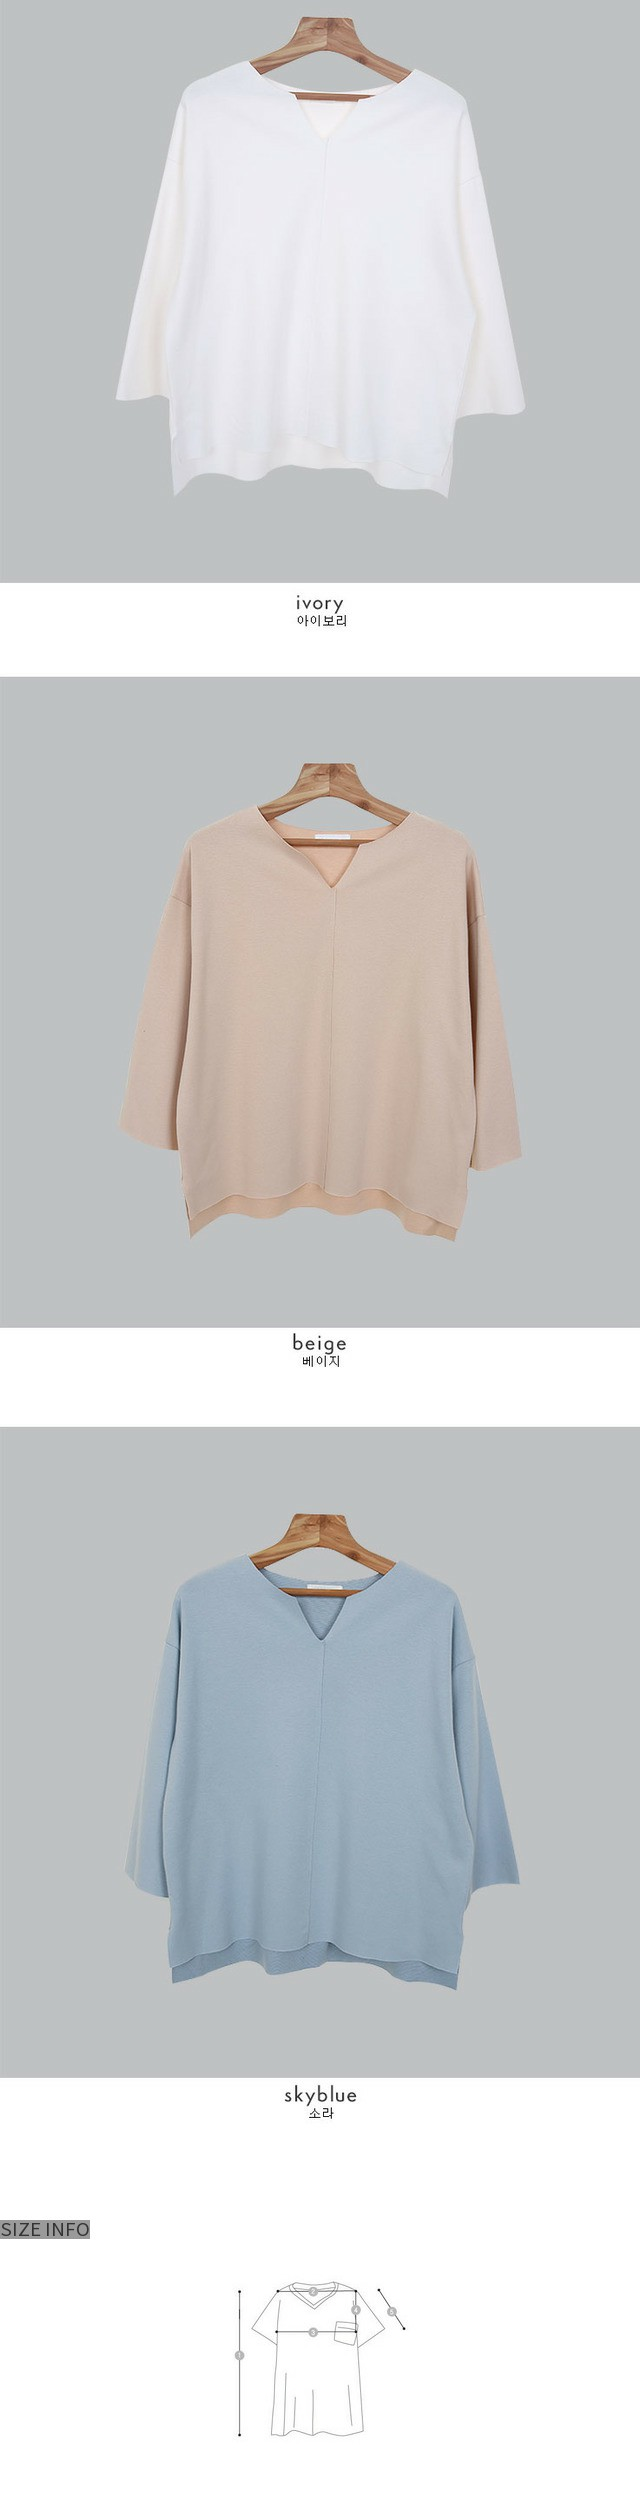 Whipping-Rouge T-shirt